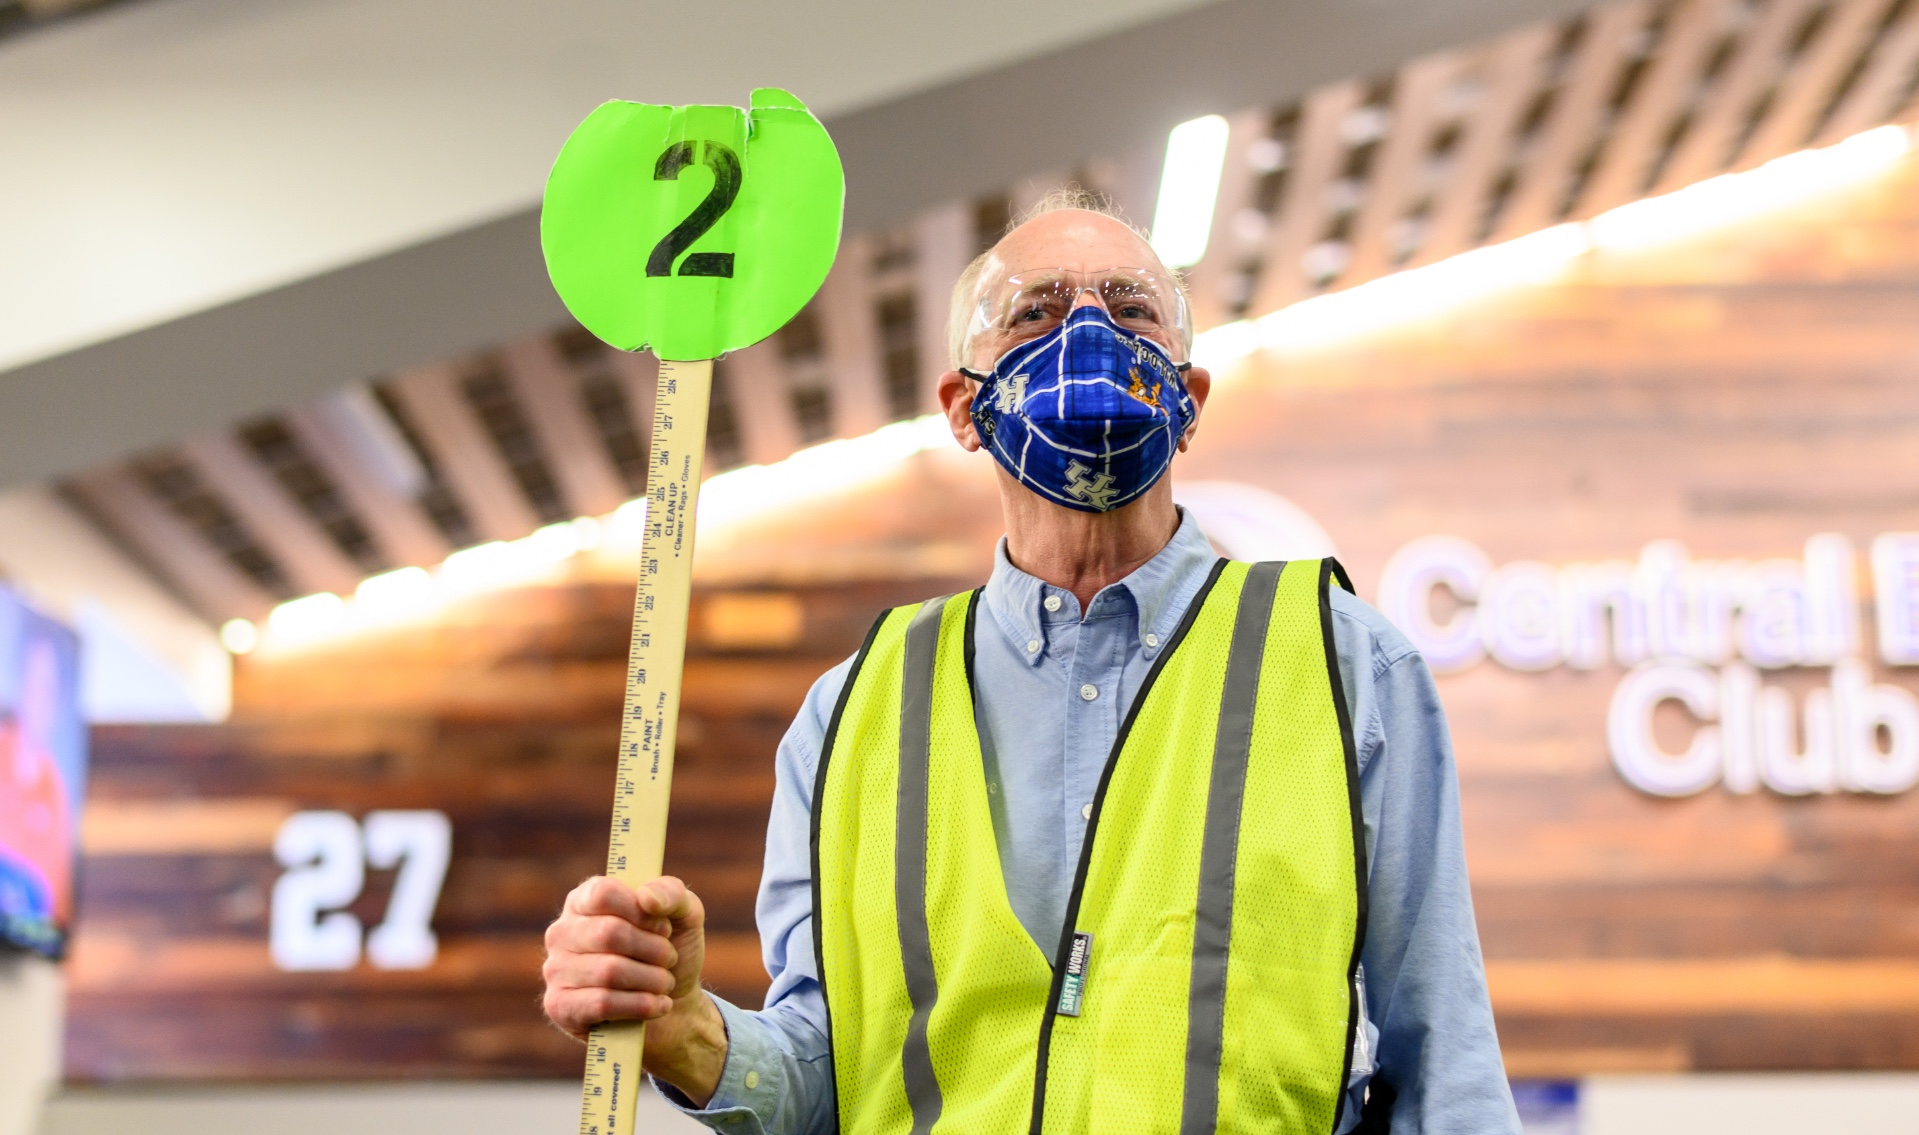 Bob Evans, an older man with grey hair, stands inside the Kroger Field stadium directing people. He is wearing a blue facemask, a green reflective vest, a blue shirt, and is and holding up a number 2 sign.